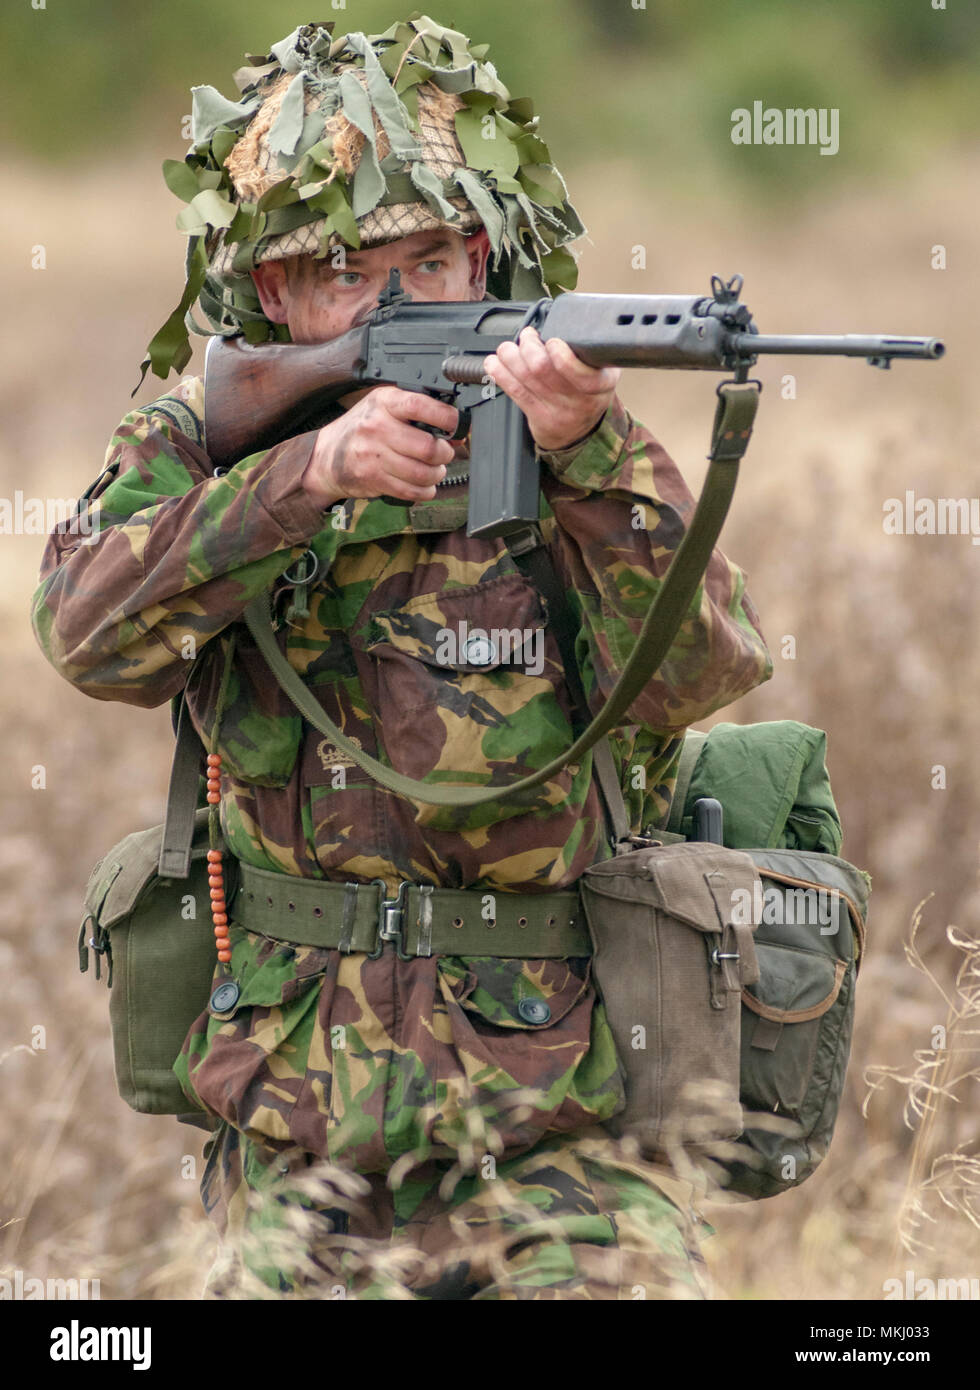 L1a1 Stock Photos & L1a1 Stock Images - Alamy